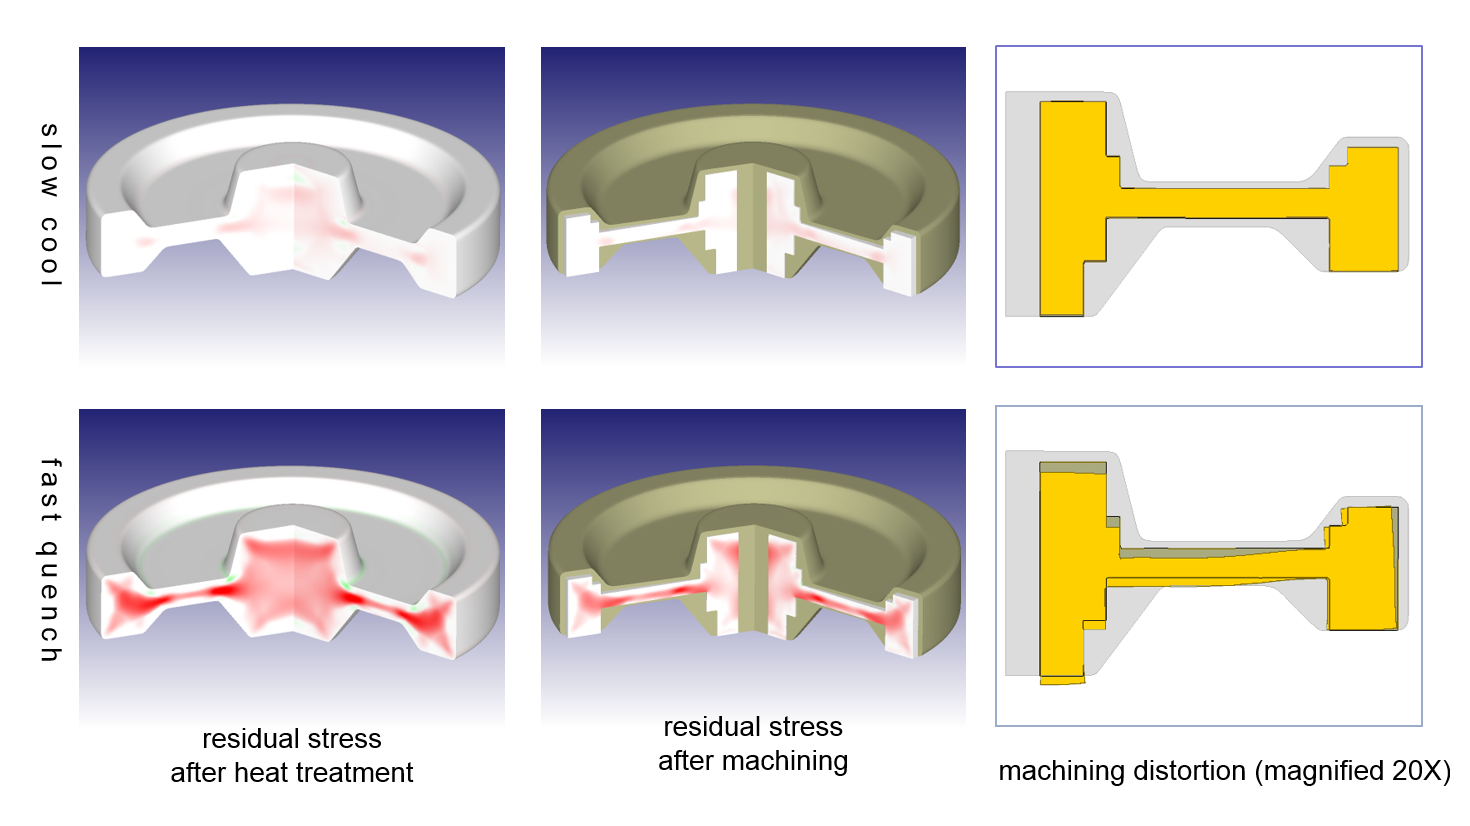 Post machining distortion prediction due to residual stress from heat treatment